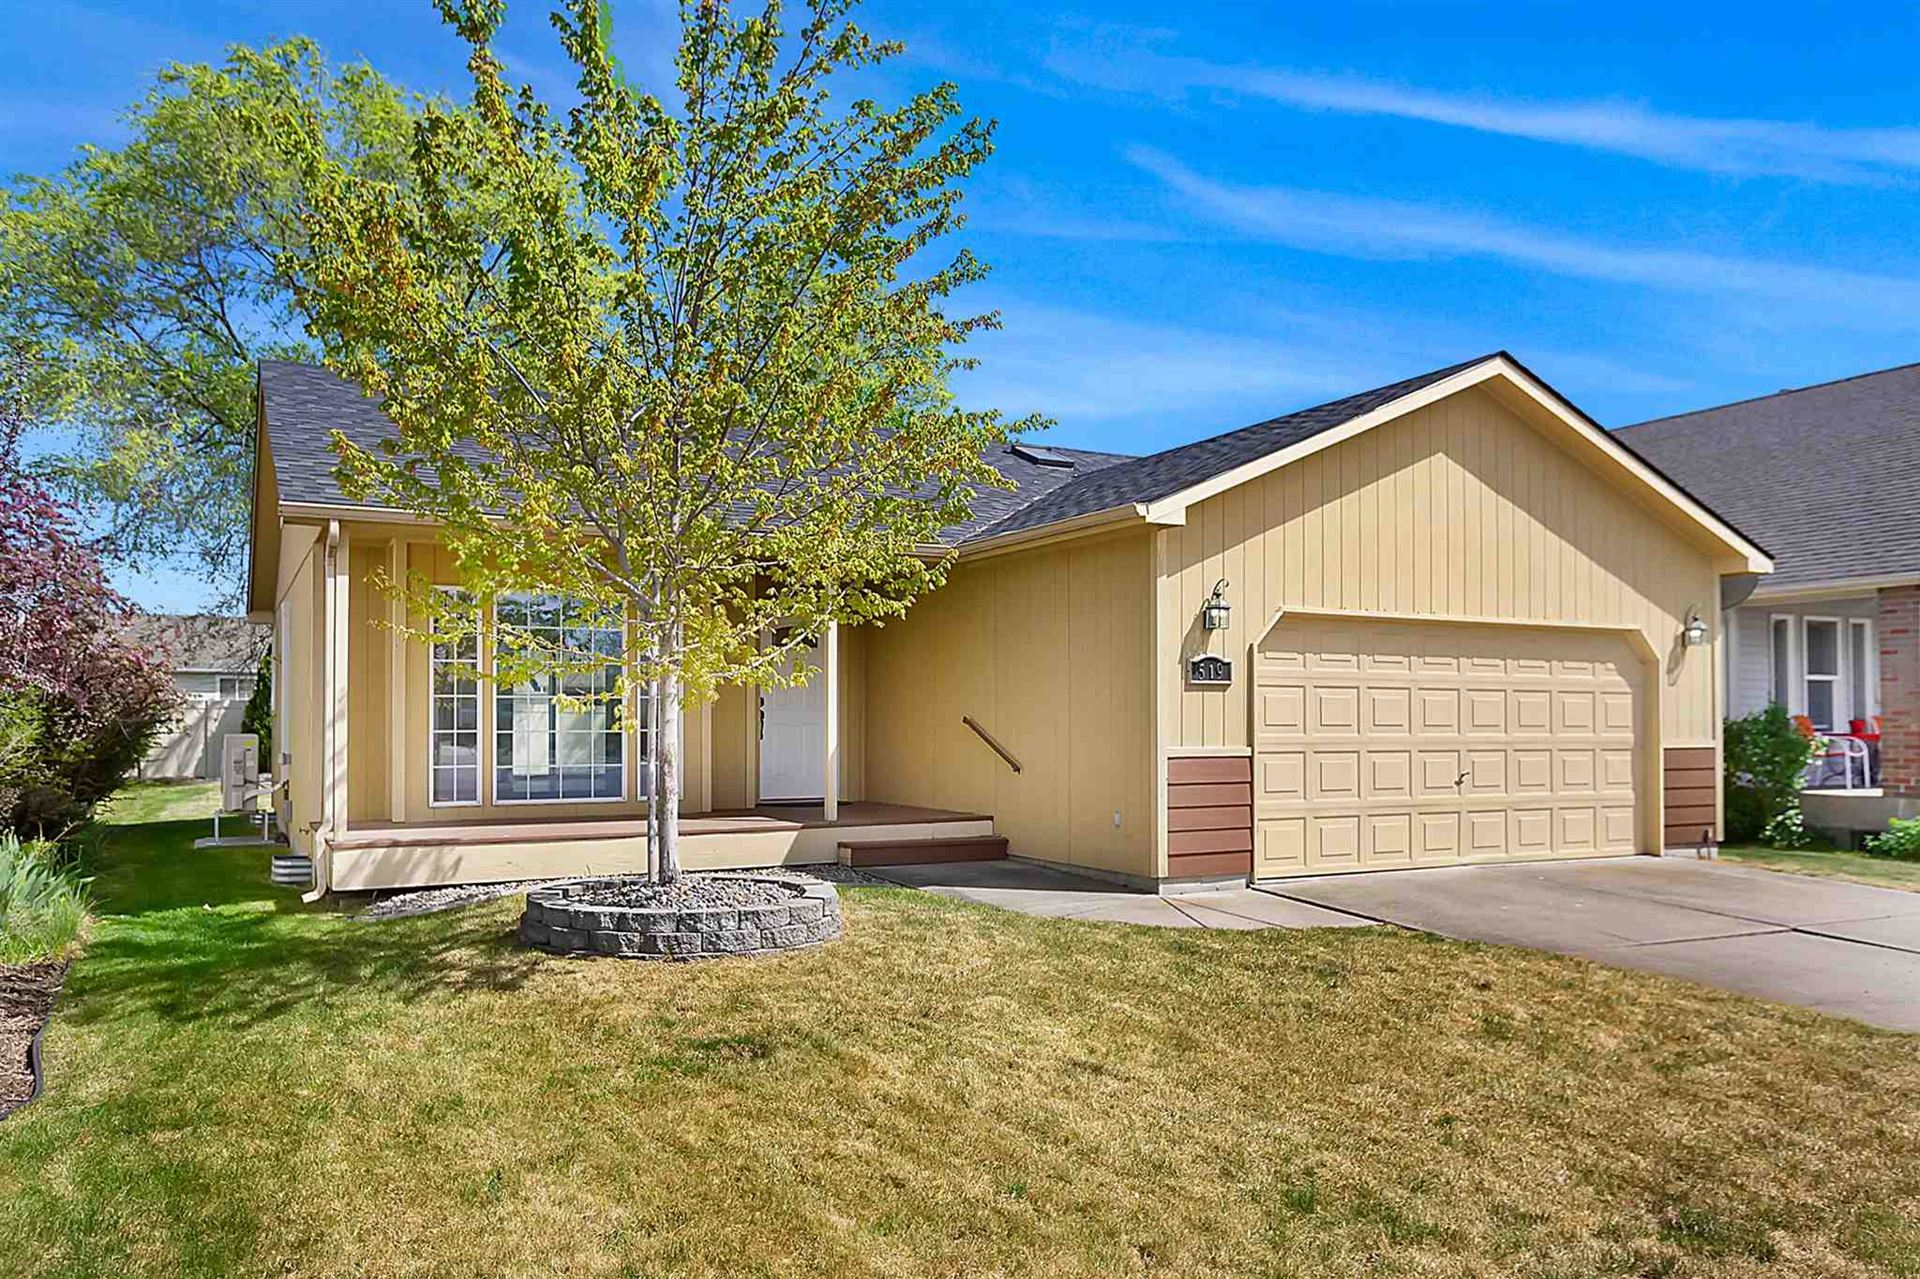 519 S Lucille Ct, Spokane Valley, WA 99216 - #: 202115157